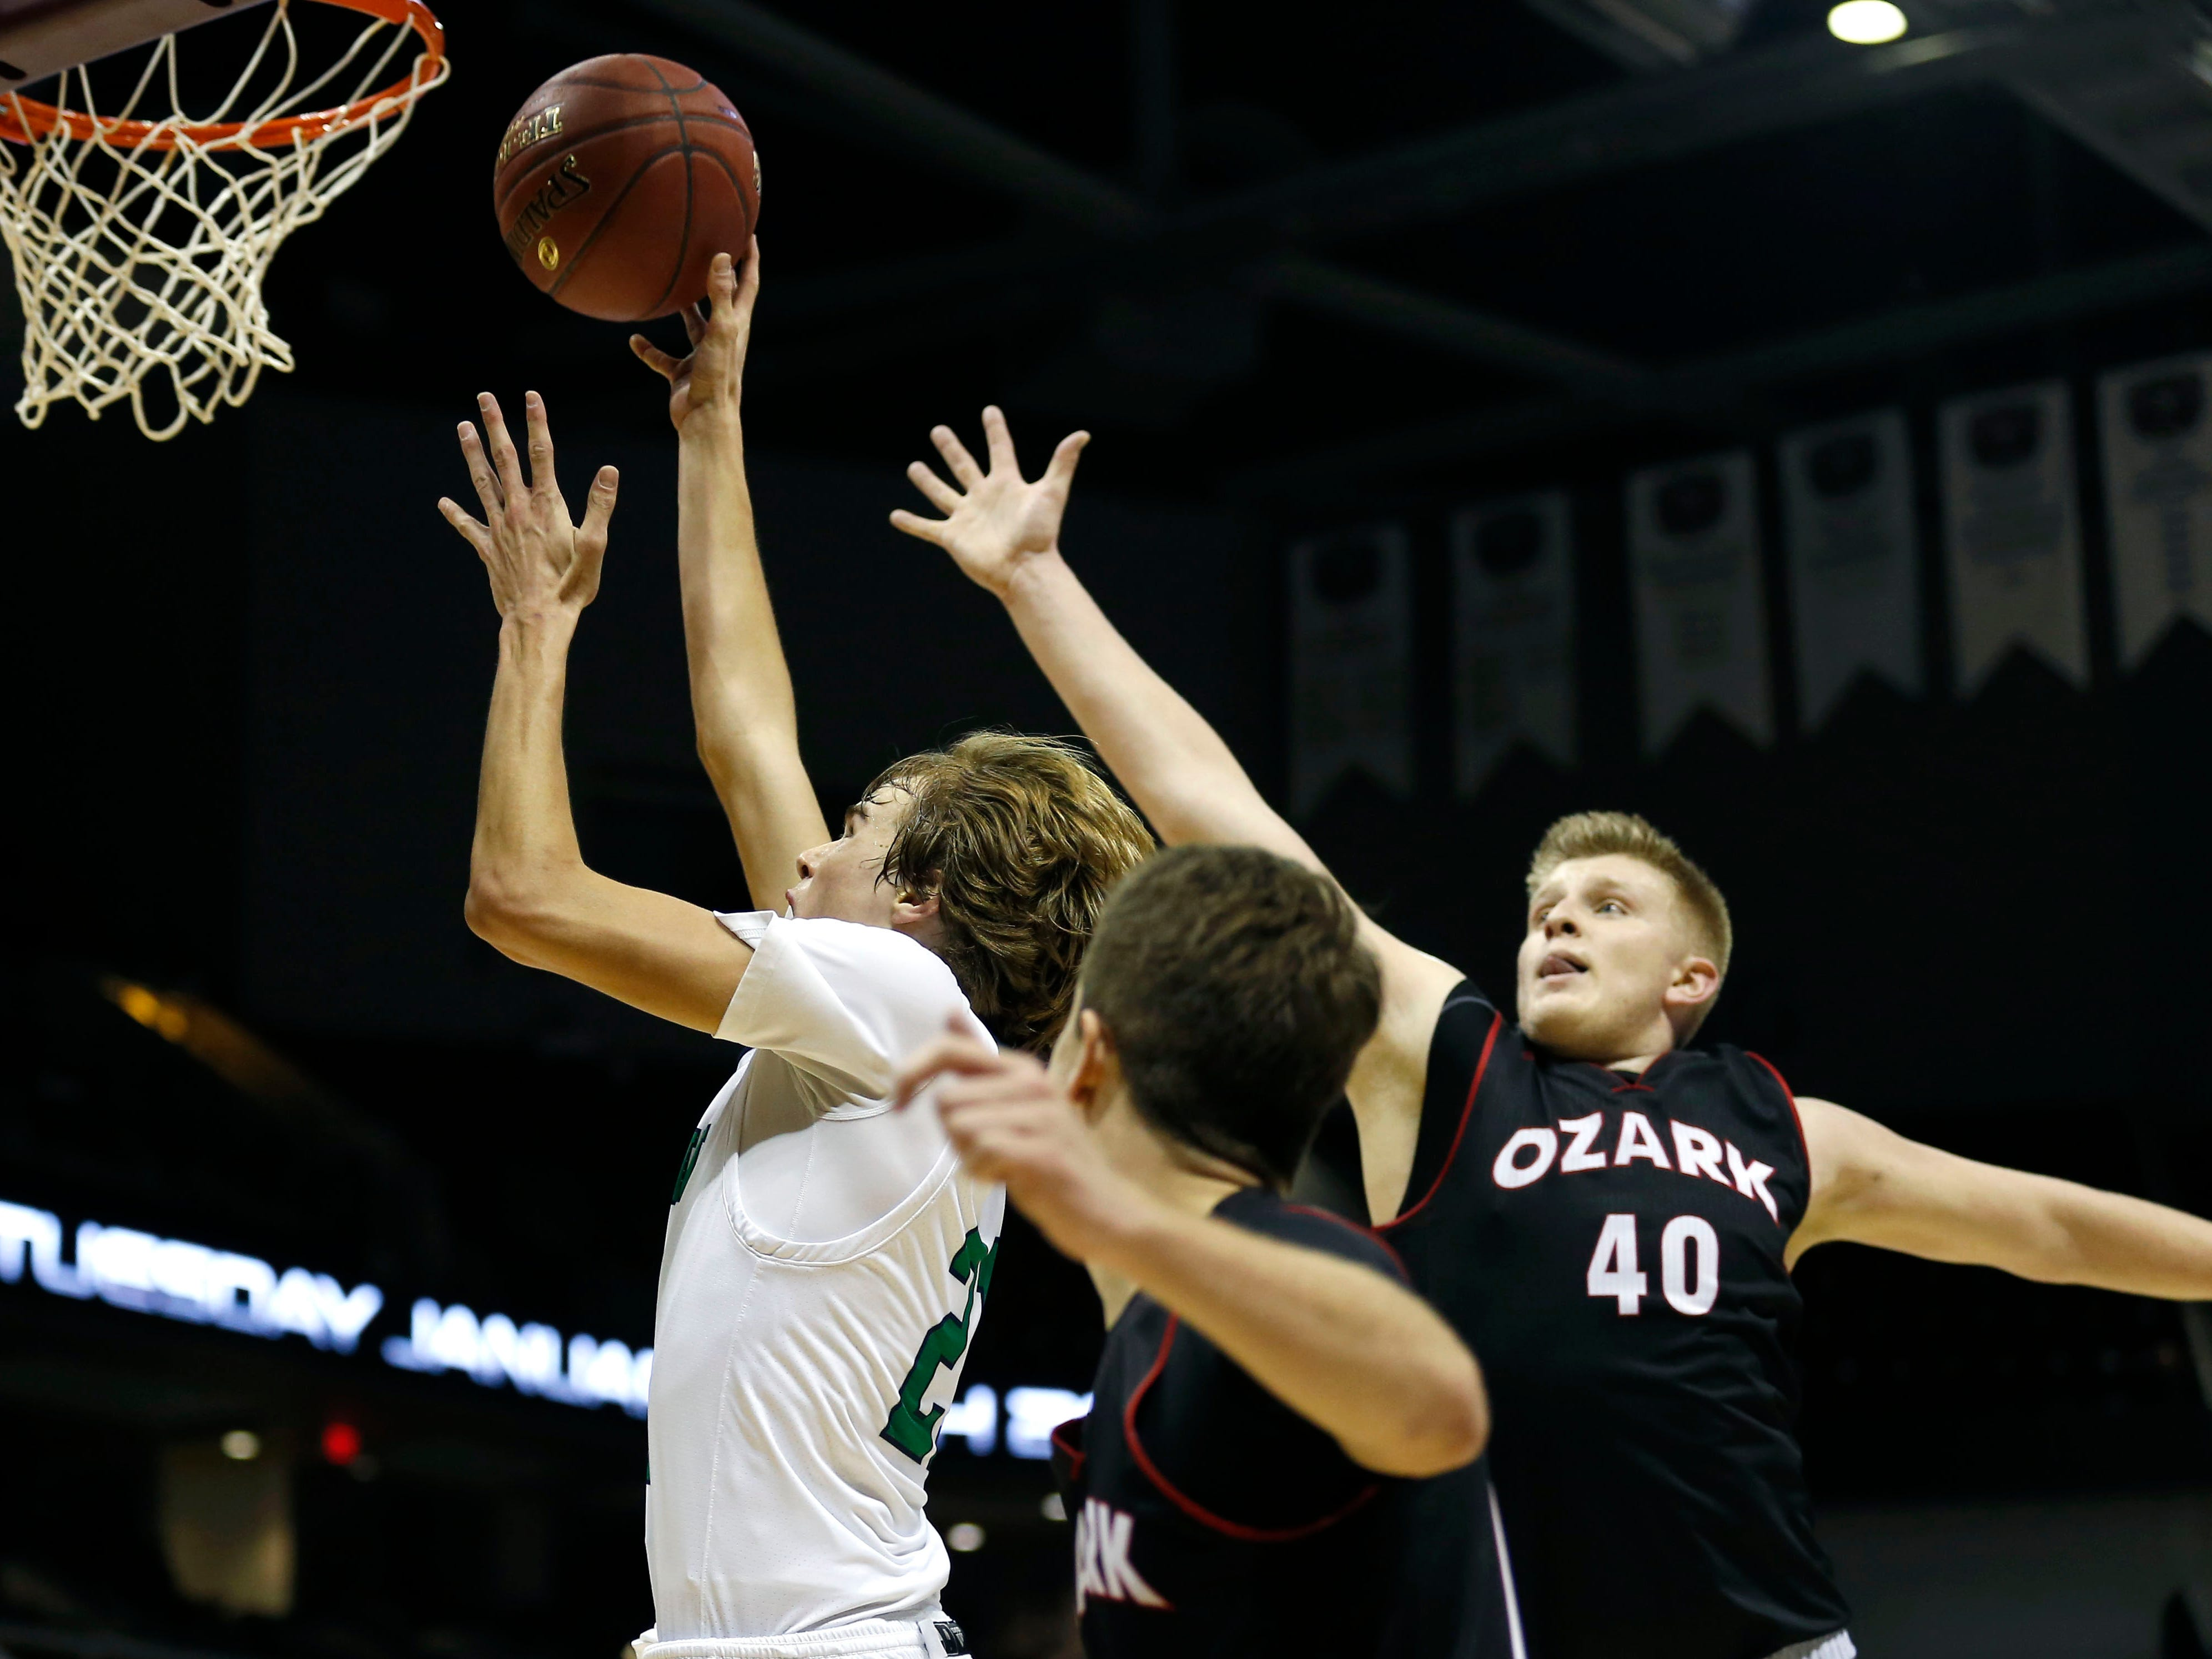 Catholic's Charlie O'Reilly take the ball to the basket during the Gold Division championship game against the Ozark Tigers during the 2018 Blue and Gold Tournament at JQH Arena on Saturday, Dec. 29, 2018.